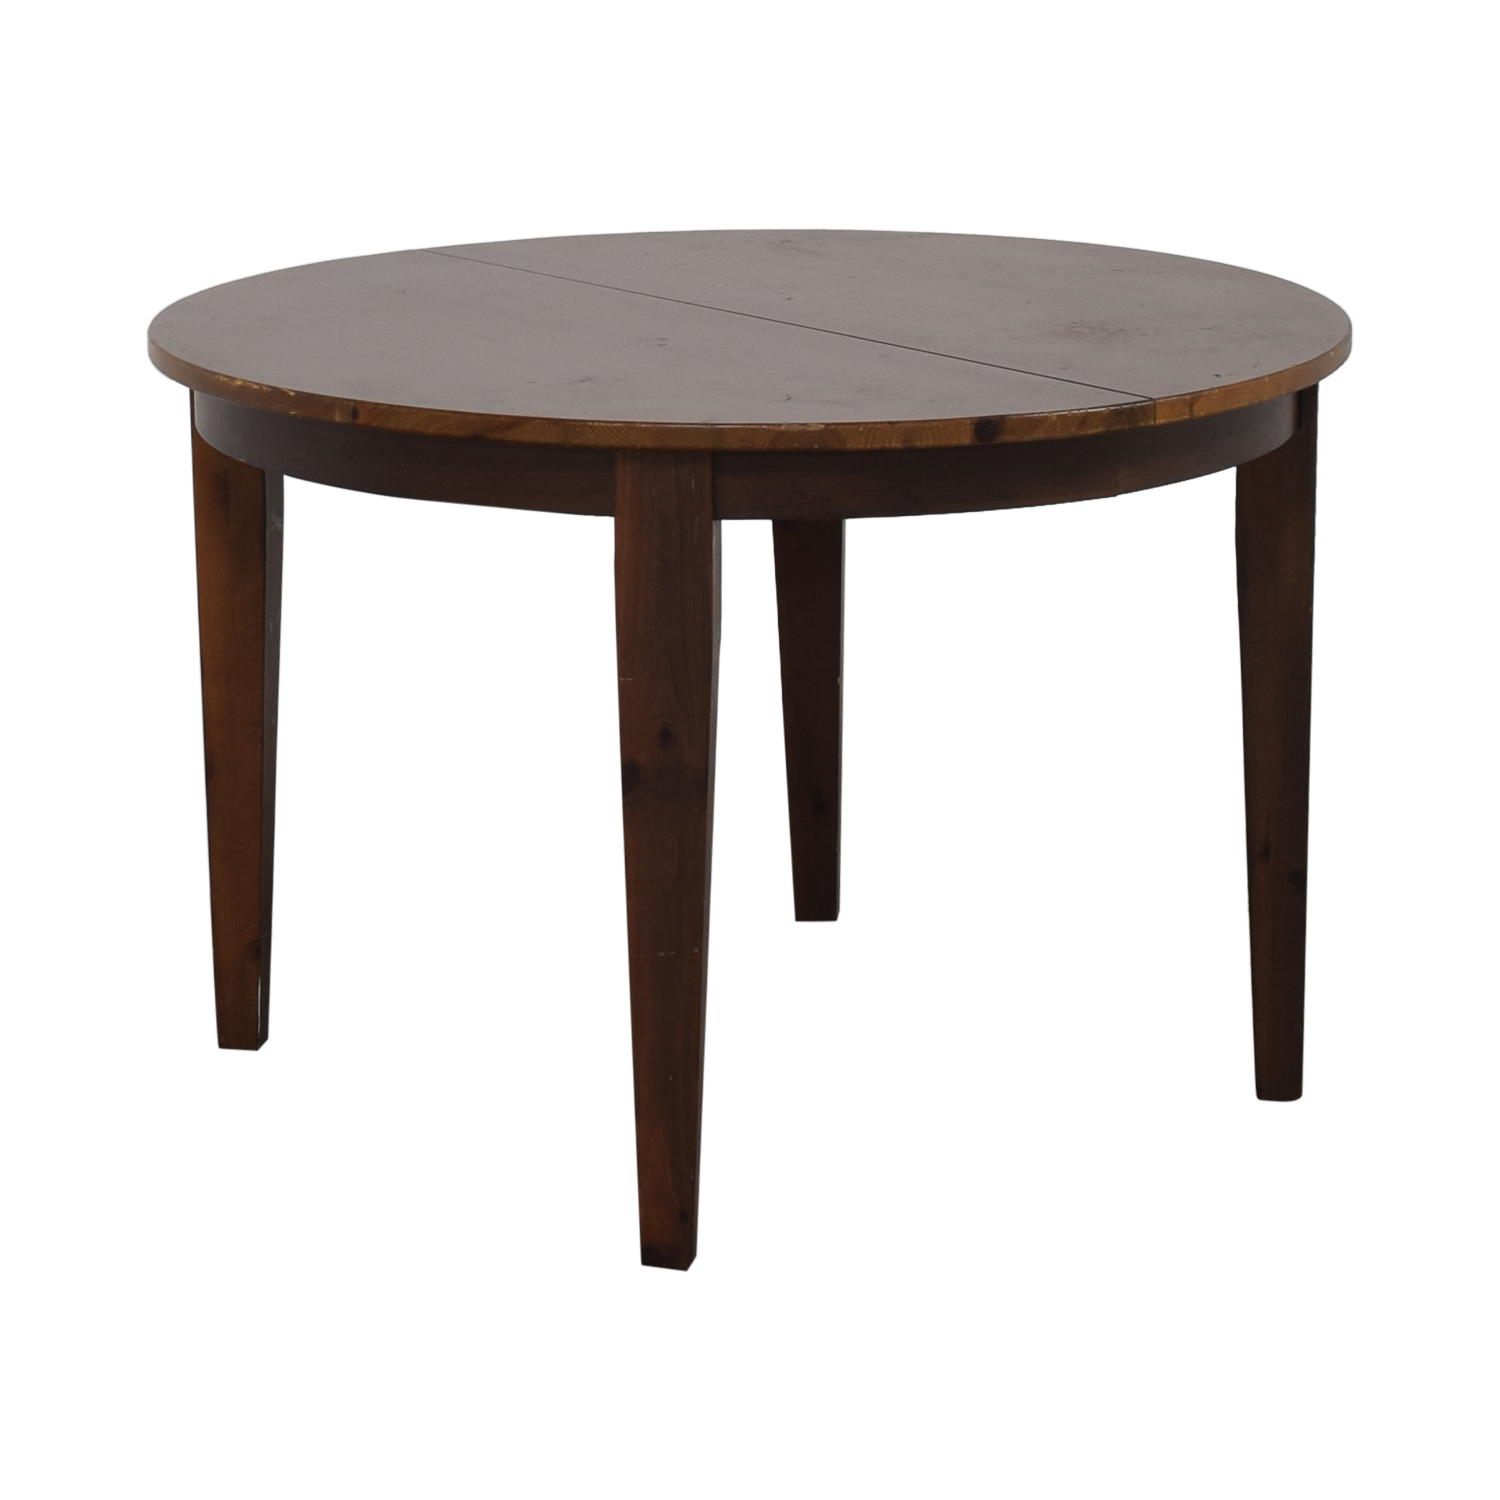 Round Dining Table second hand